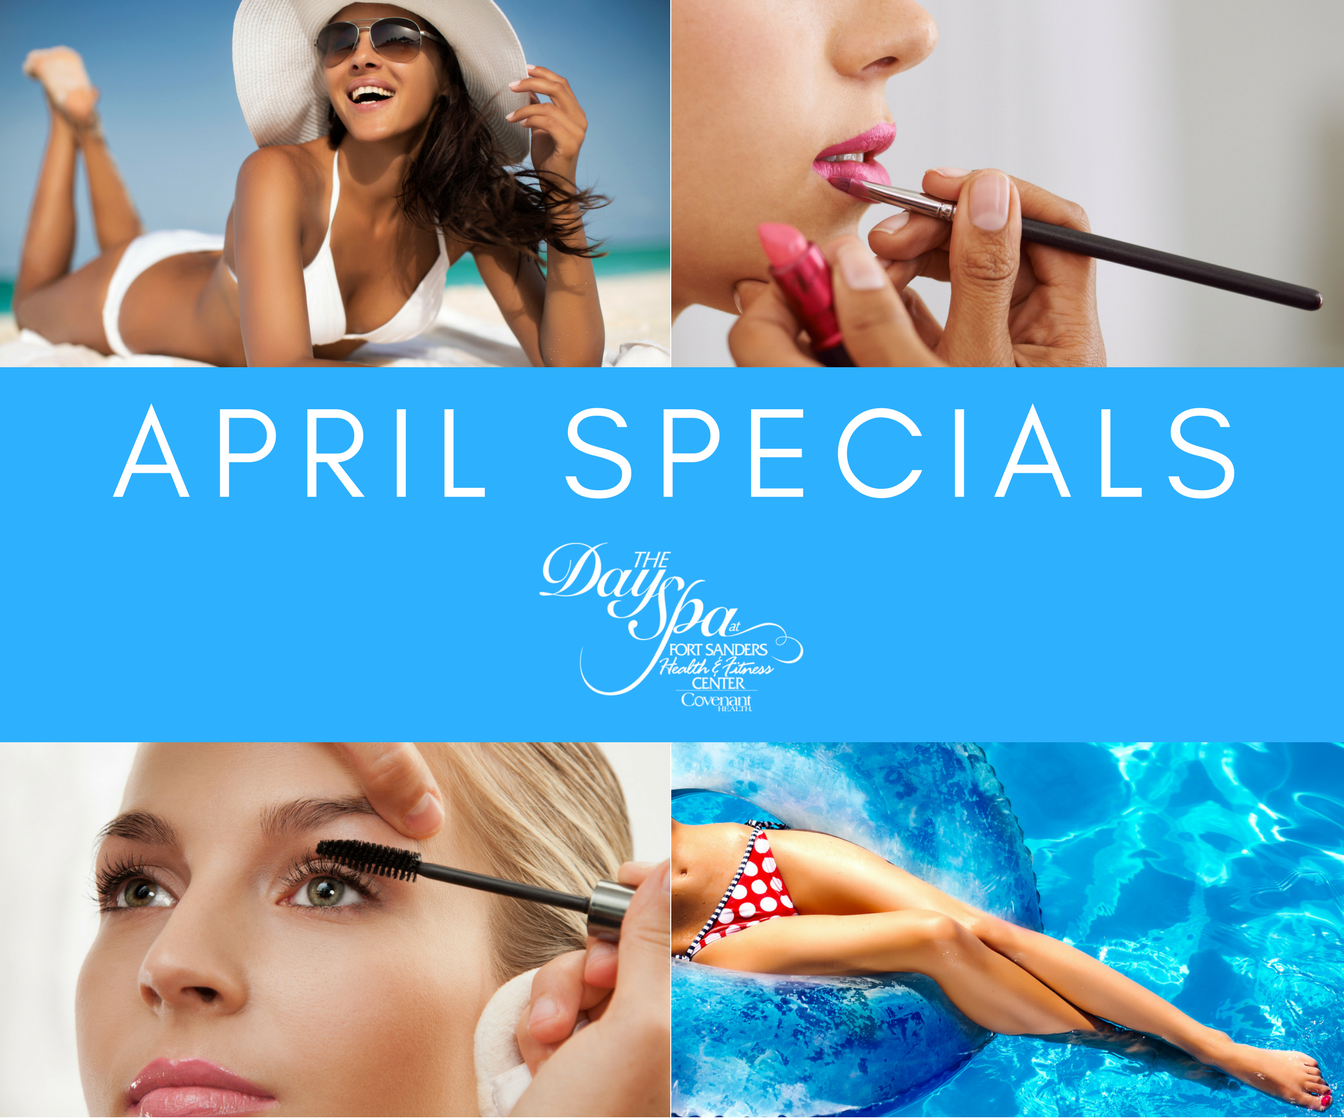 April Specials at The Day Spa Image